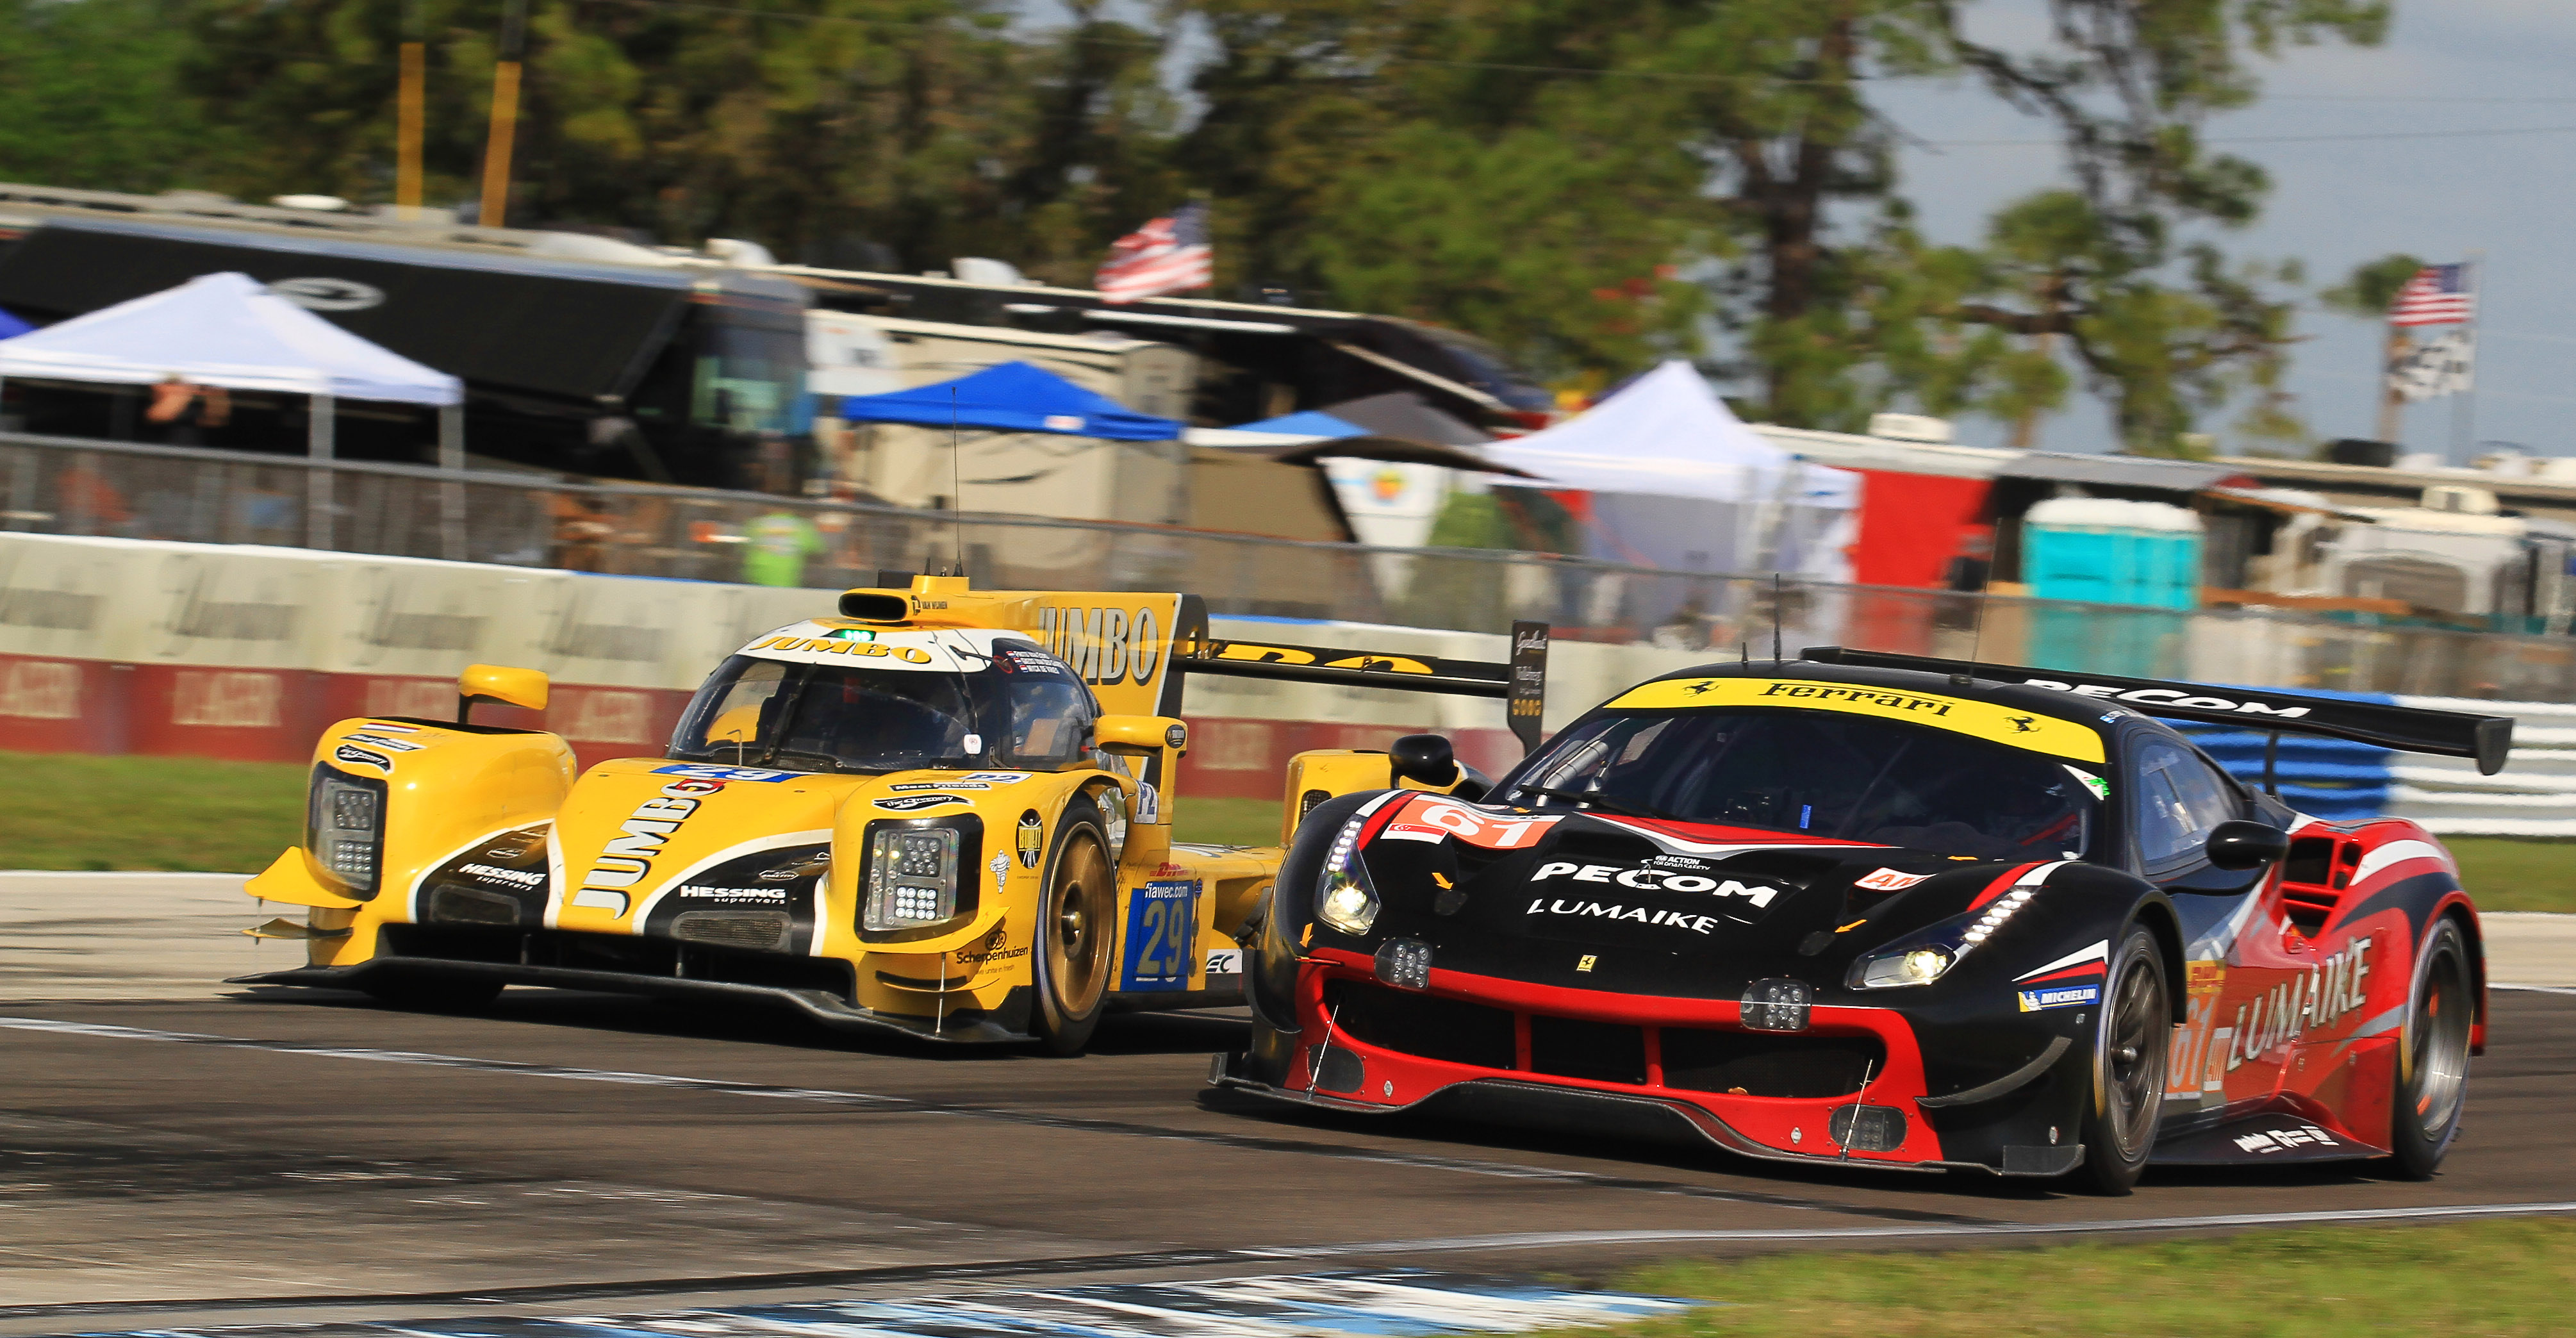 Multi-class racing at its best--GT versus prototype